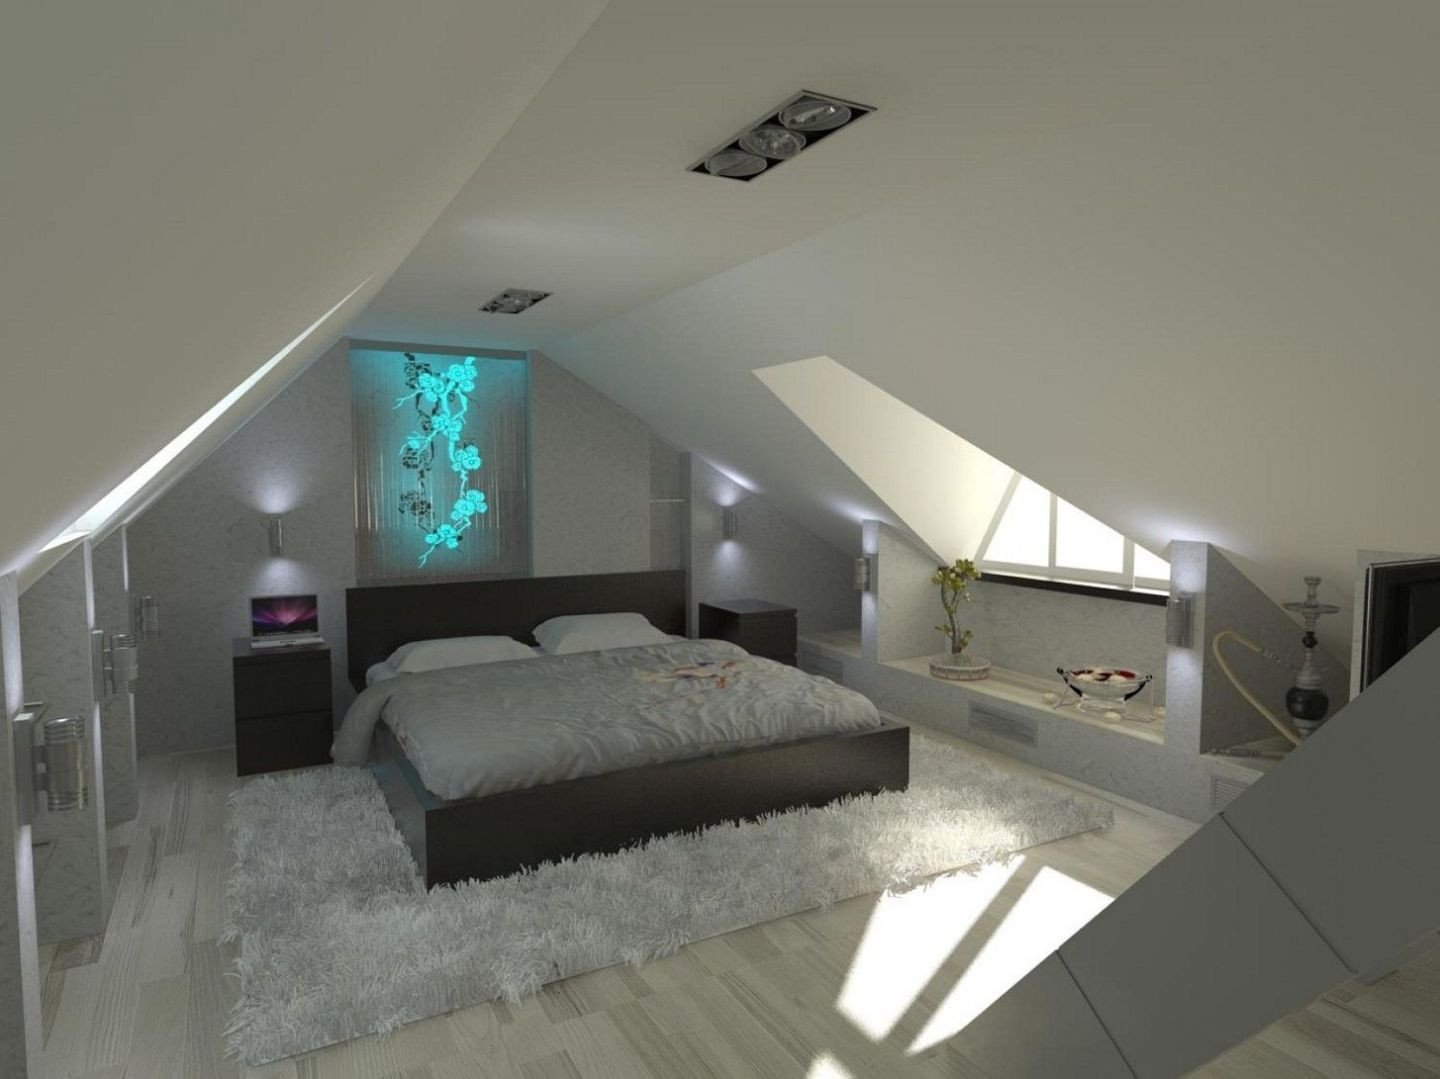 Storage Idea for Bedroom Lovely Small attic Bedroom Storage Ideas